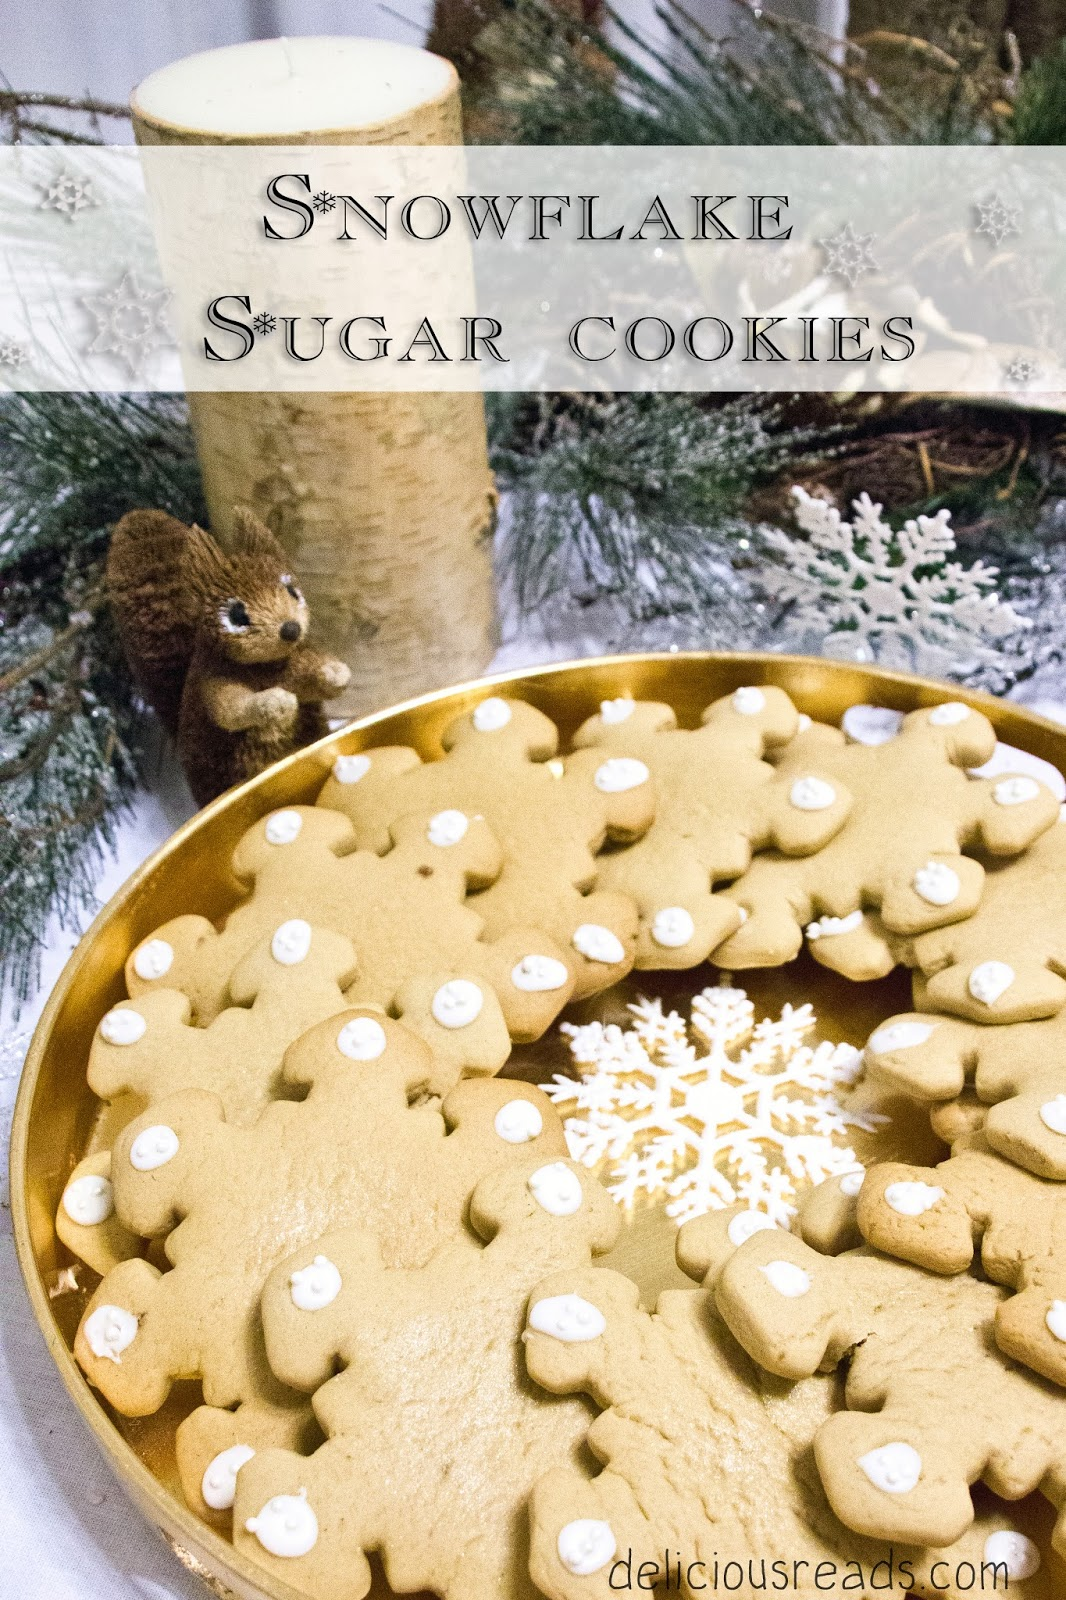 Snowflake cookies from The Snow Child